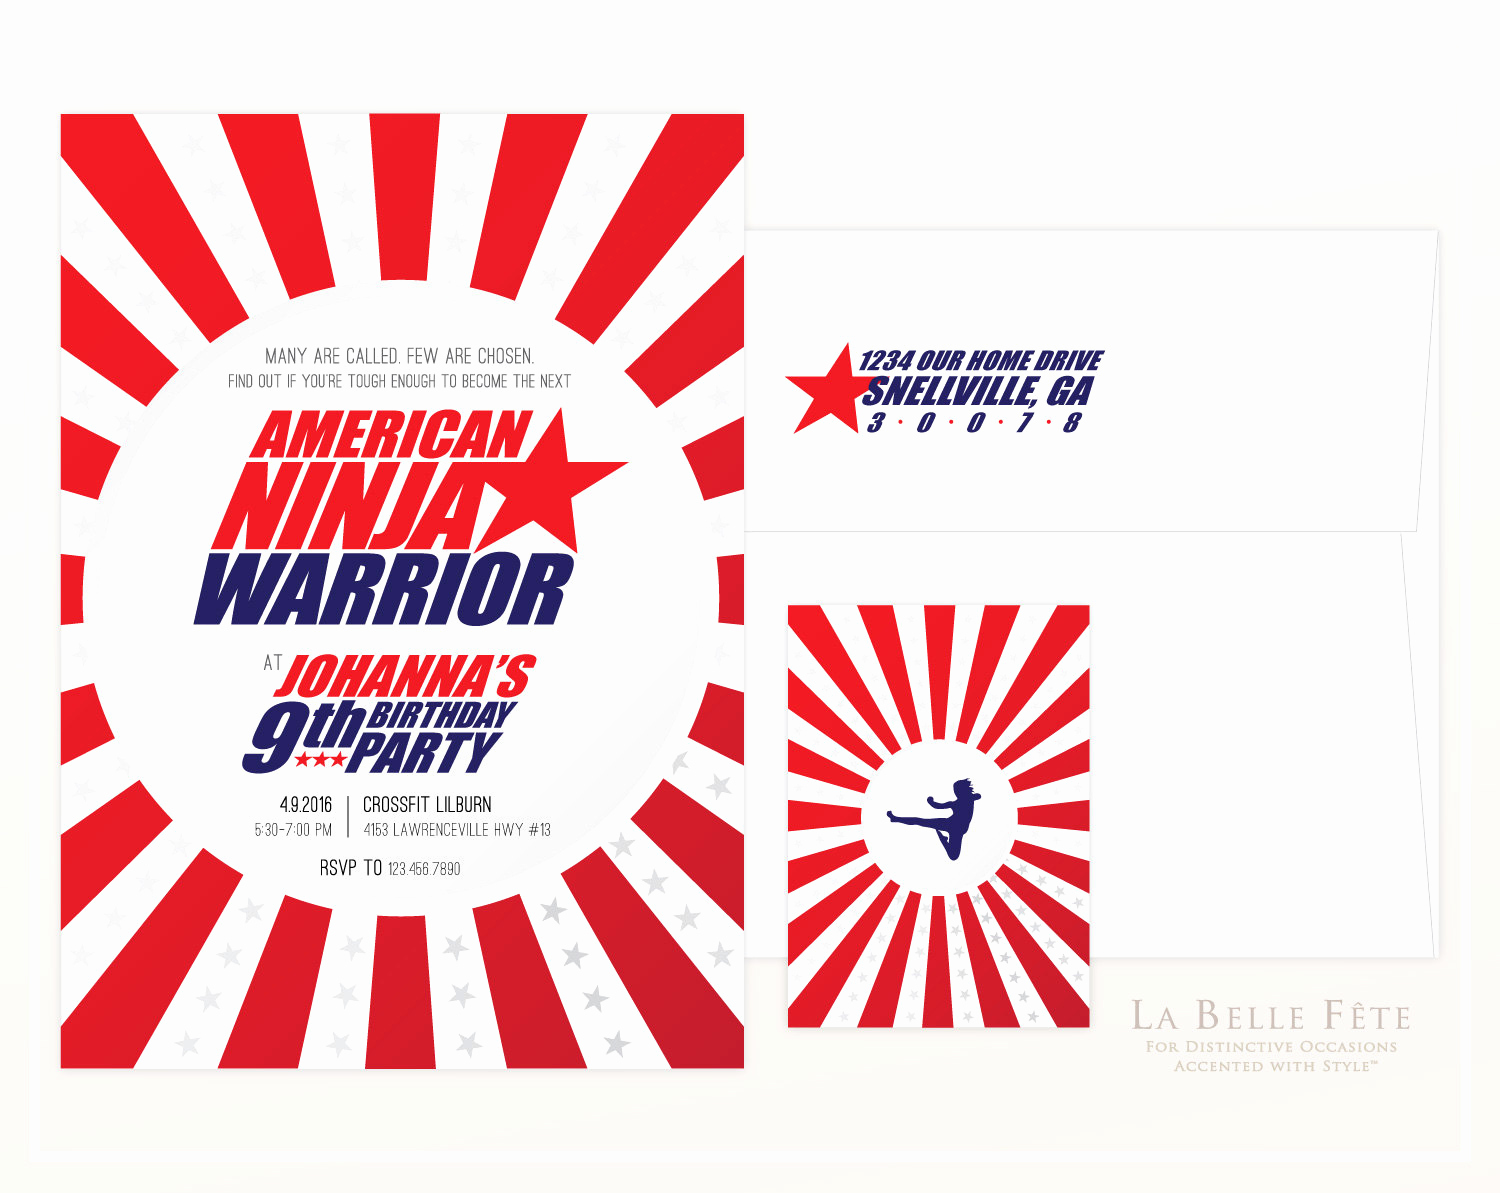 American Ninja Warrior Invitation Awesome American Ninja Warrior Birthday Party Invitation